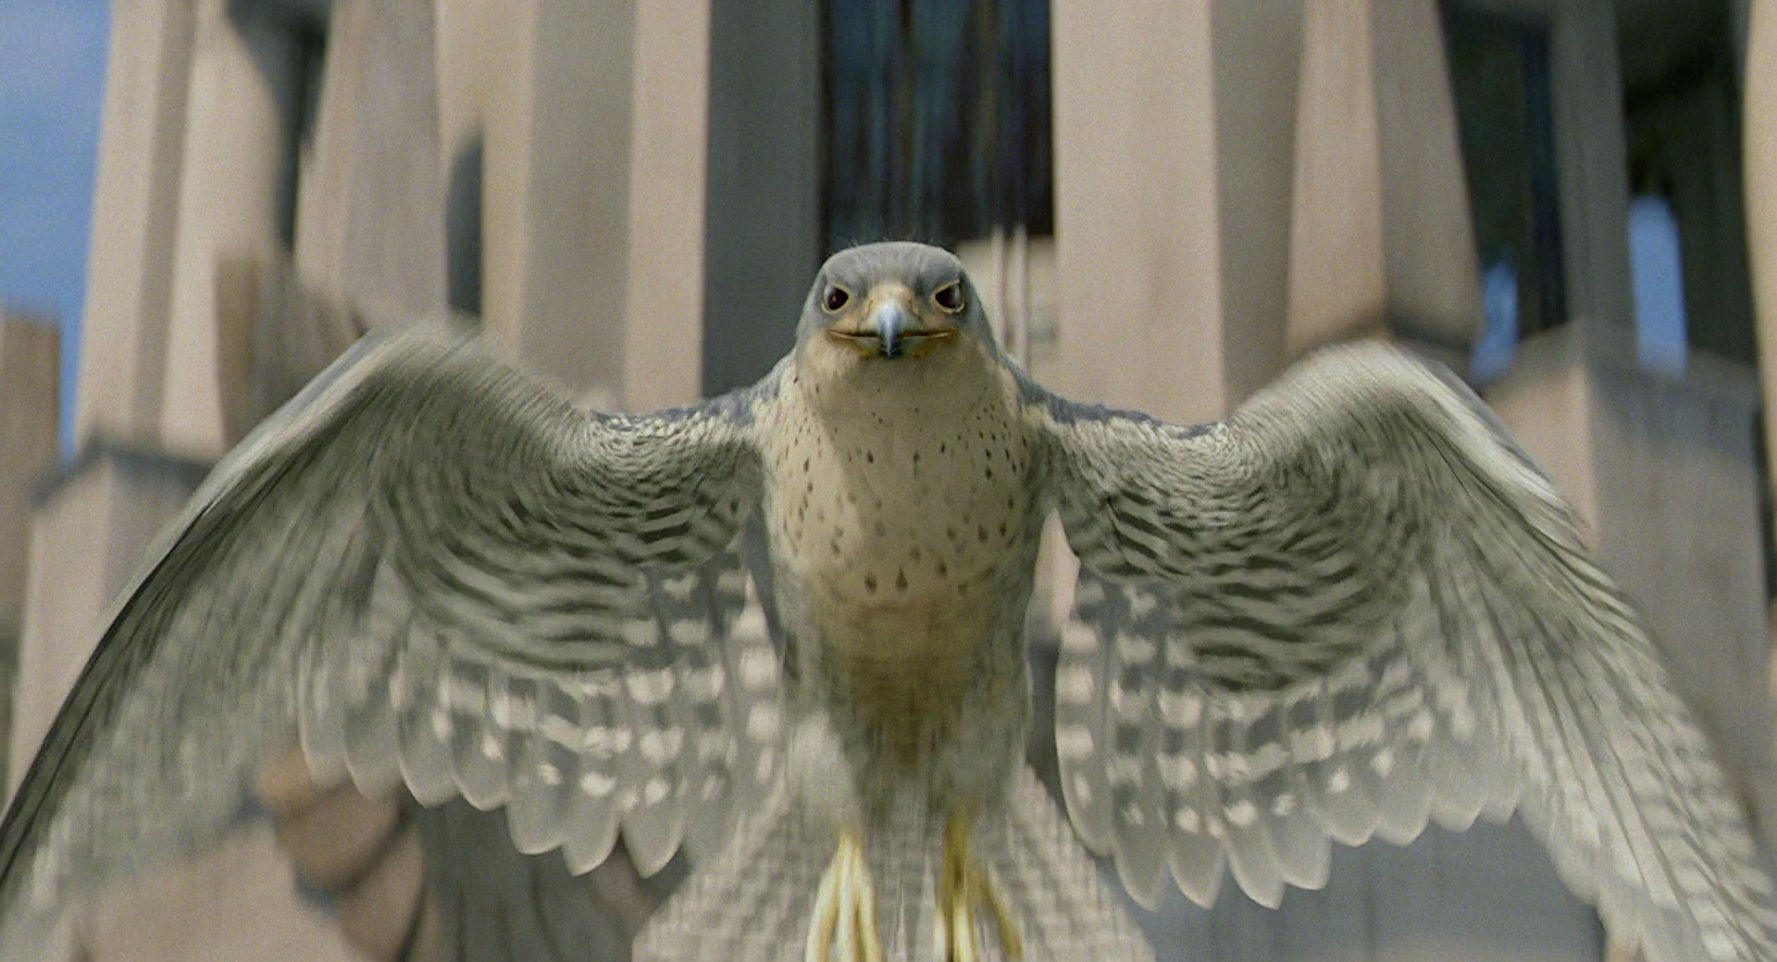 All About Falcon On Tornado Movies List Of Films With A Character Stuart Little 2